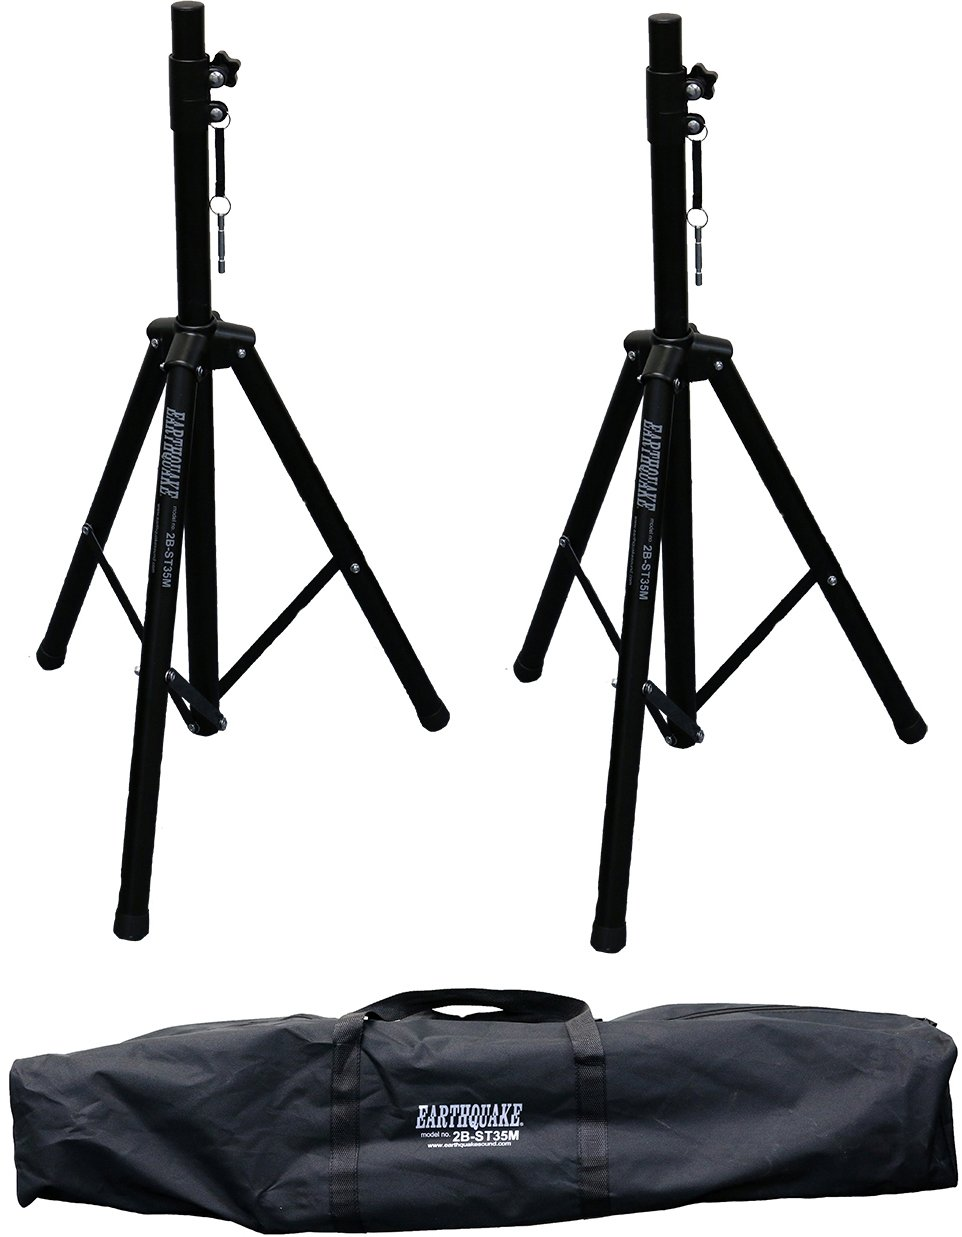 Earthquake Sound 2B-ST35M Heavy Duty Speaker Stands with Carry Bag, max weight of 132 lbs per stand (Pair) by Earthquake Sound